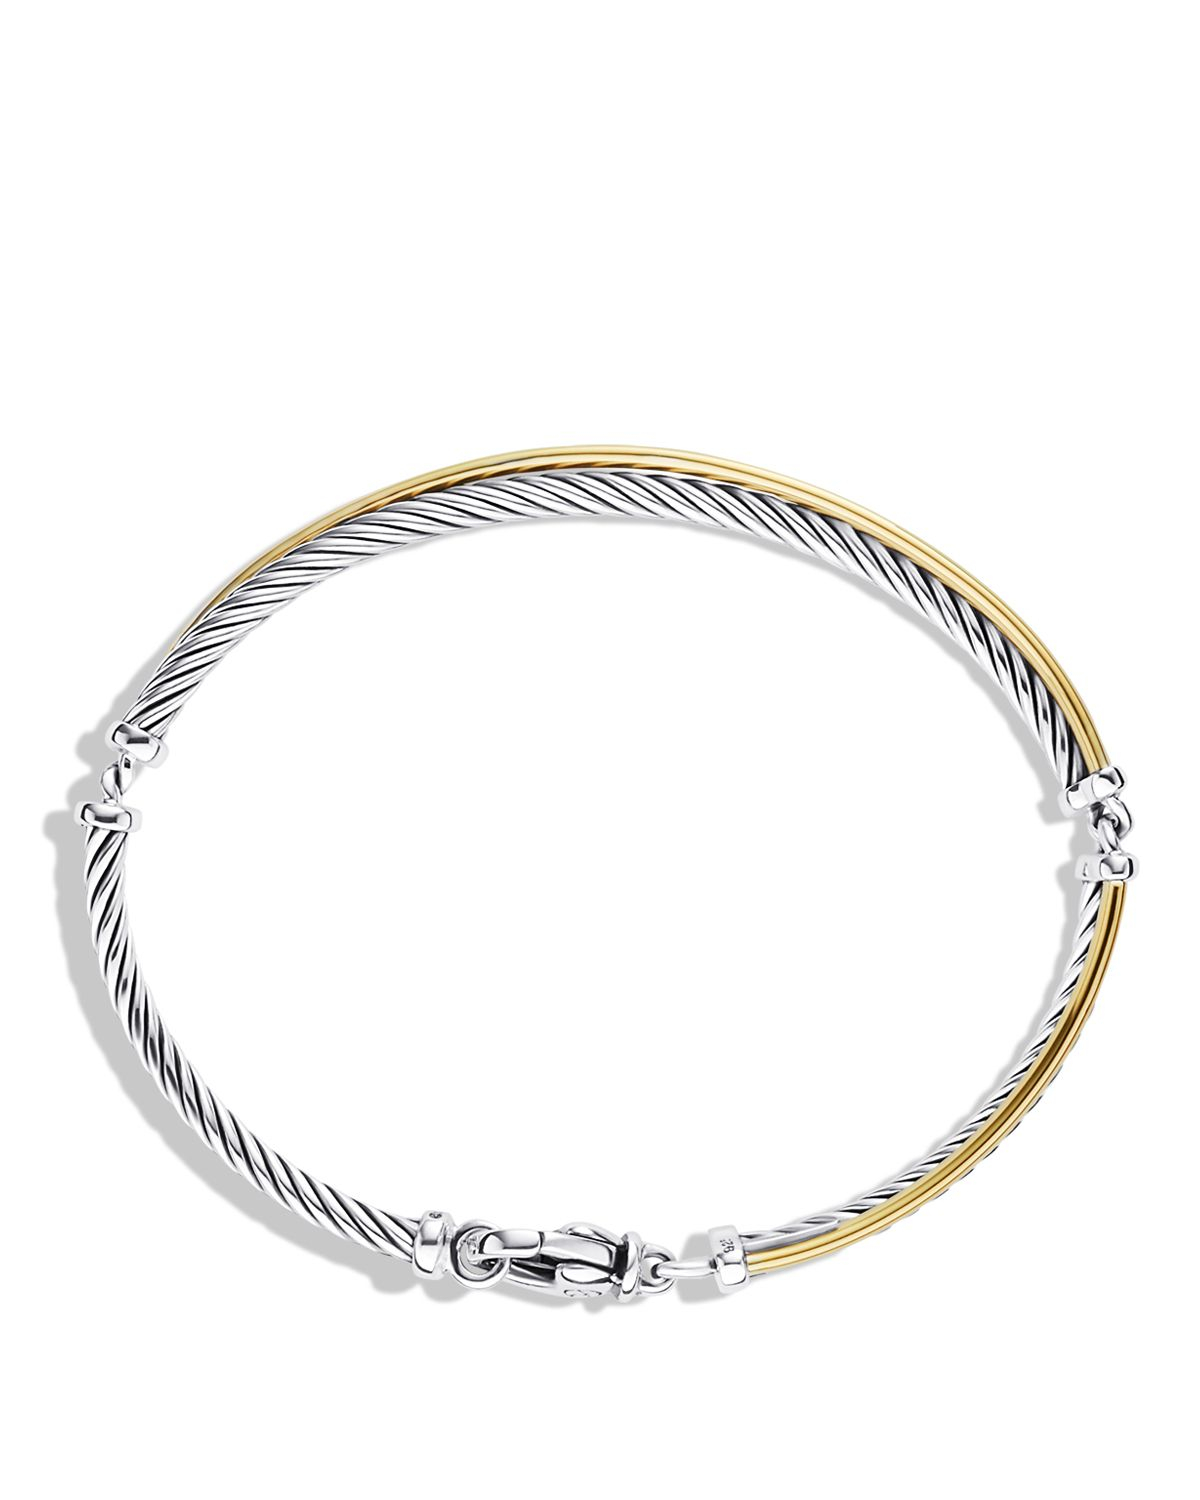 David Yurman Charm Bracelet: David Yurman Crossover Bracelet With Gold In Metallic